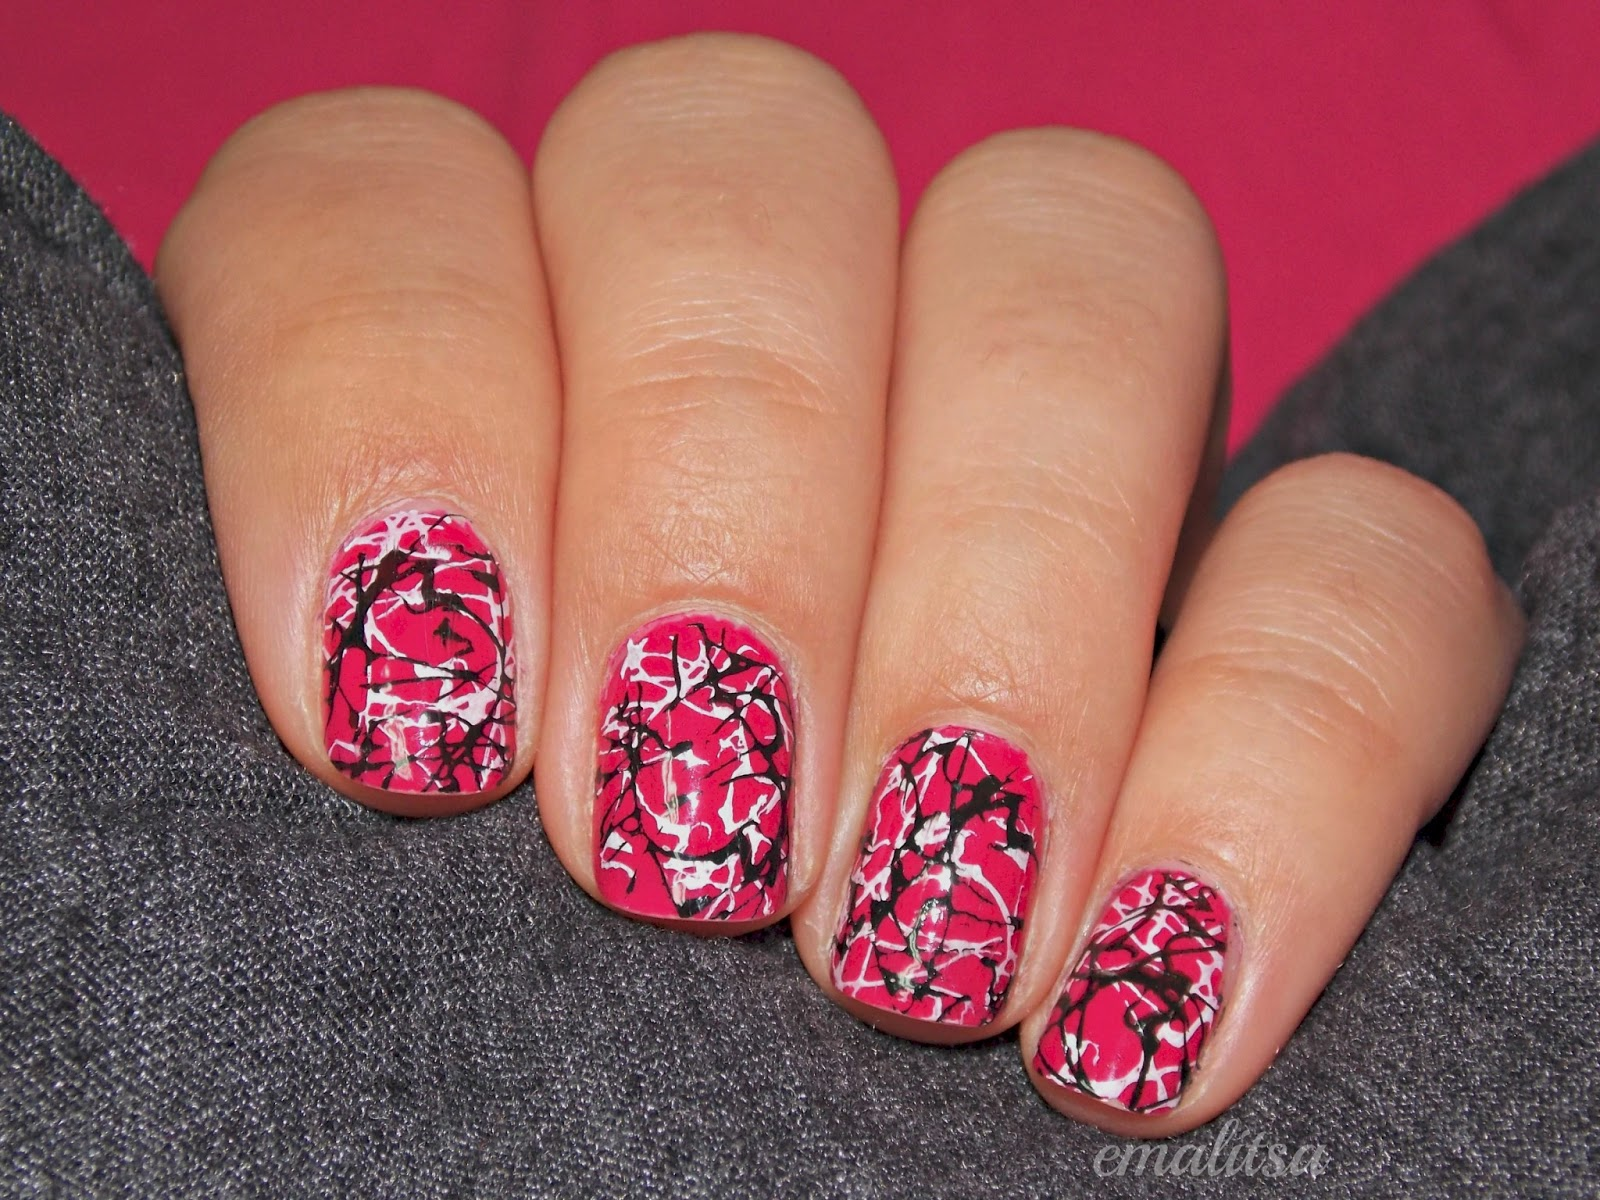 Pink and Black Nail Art